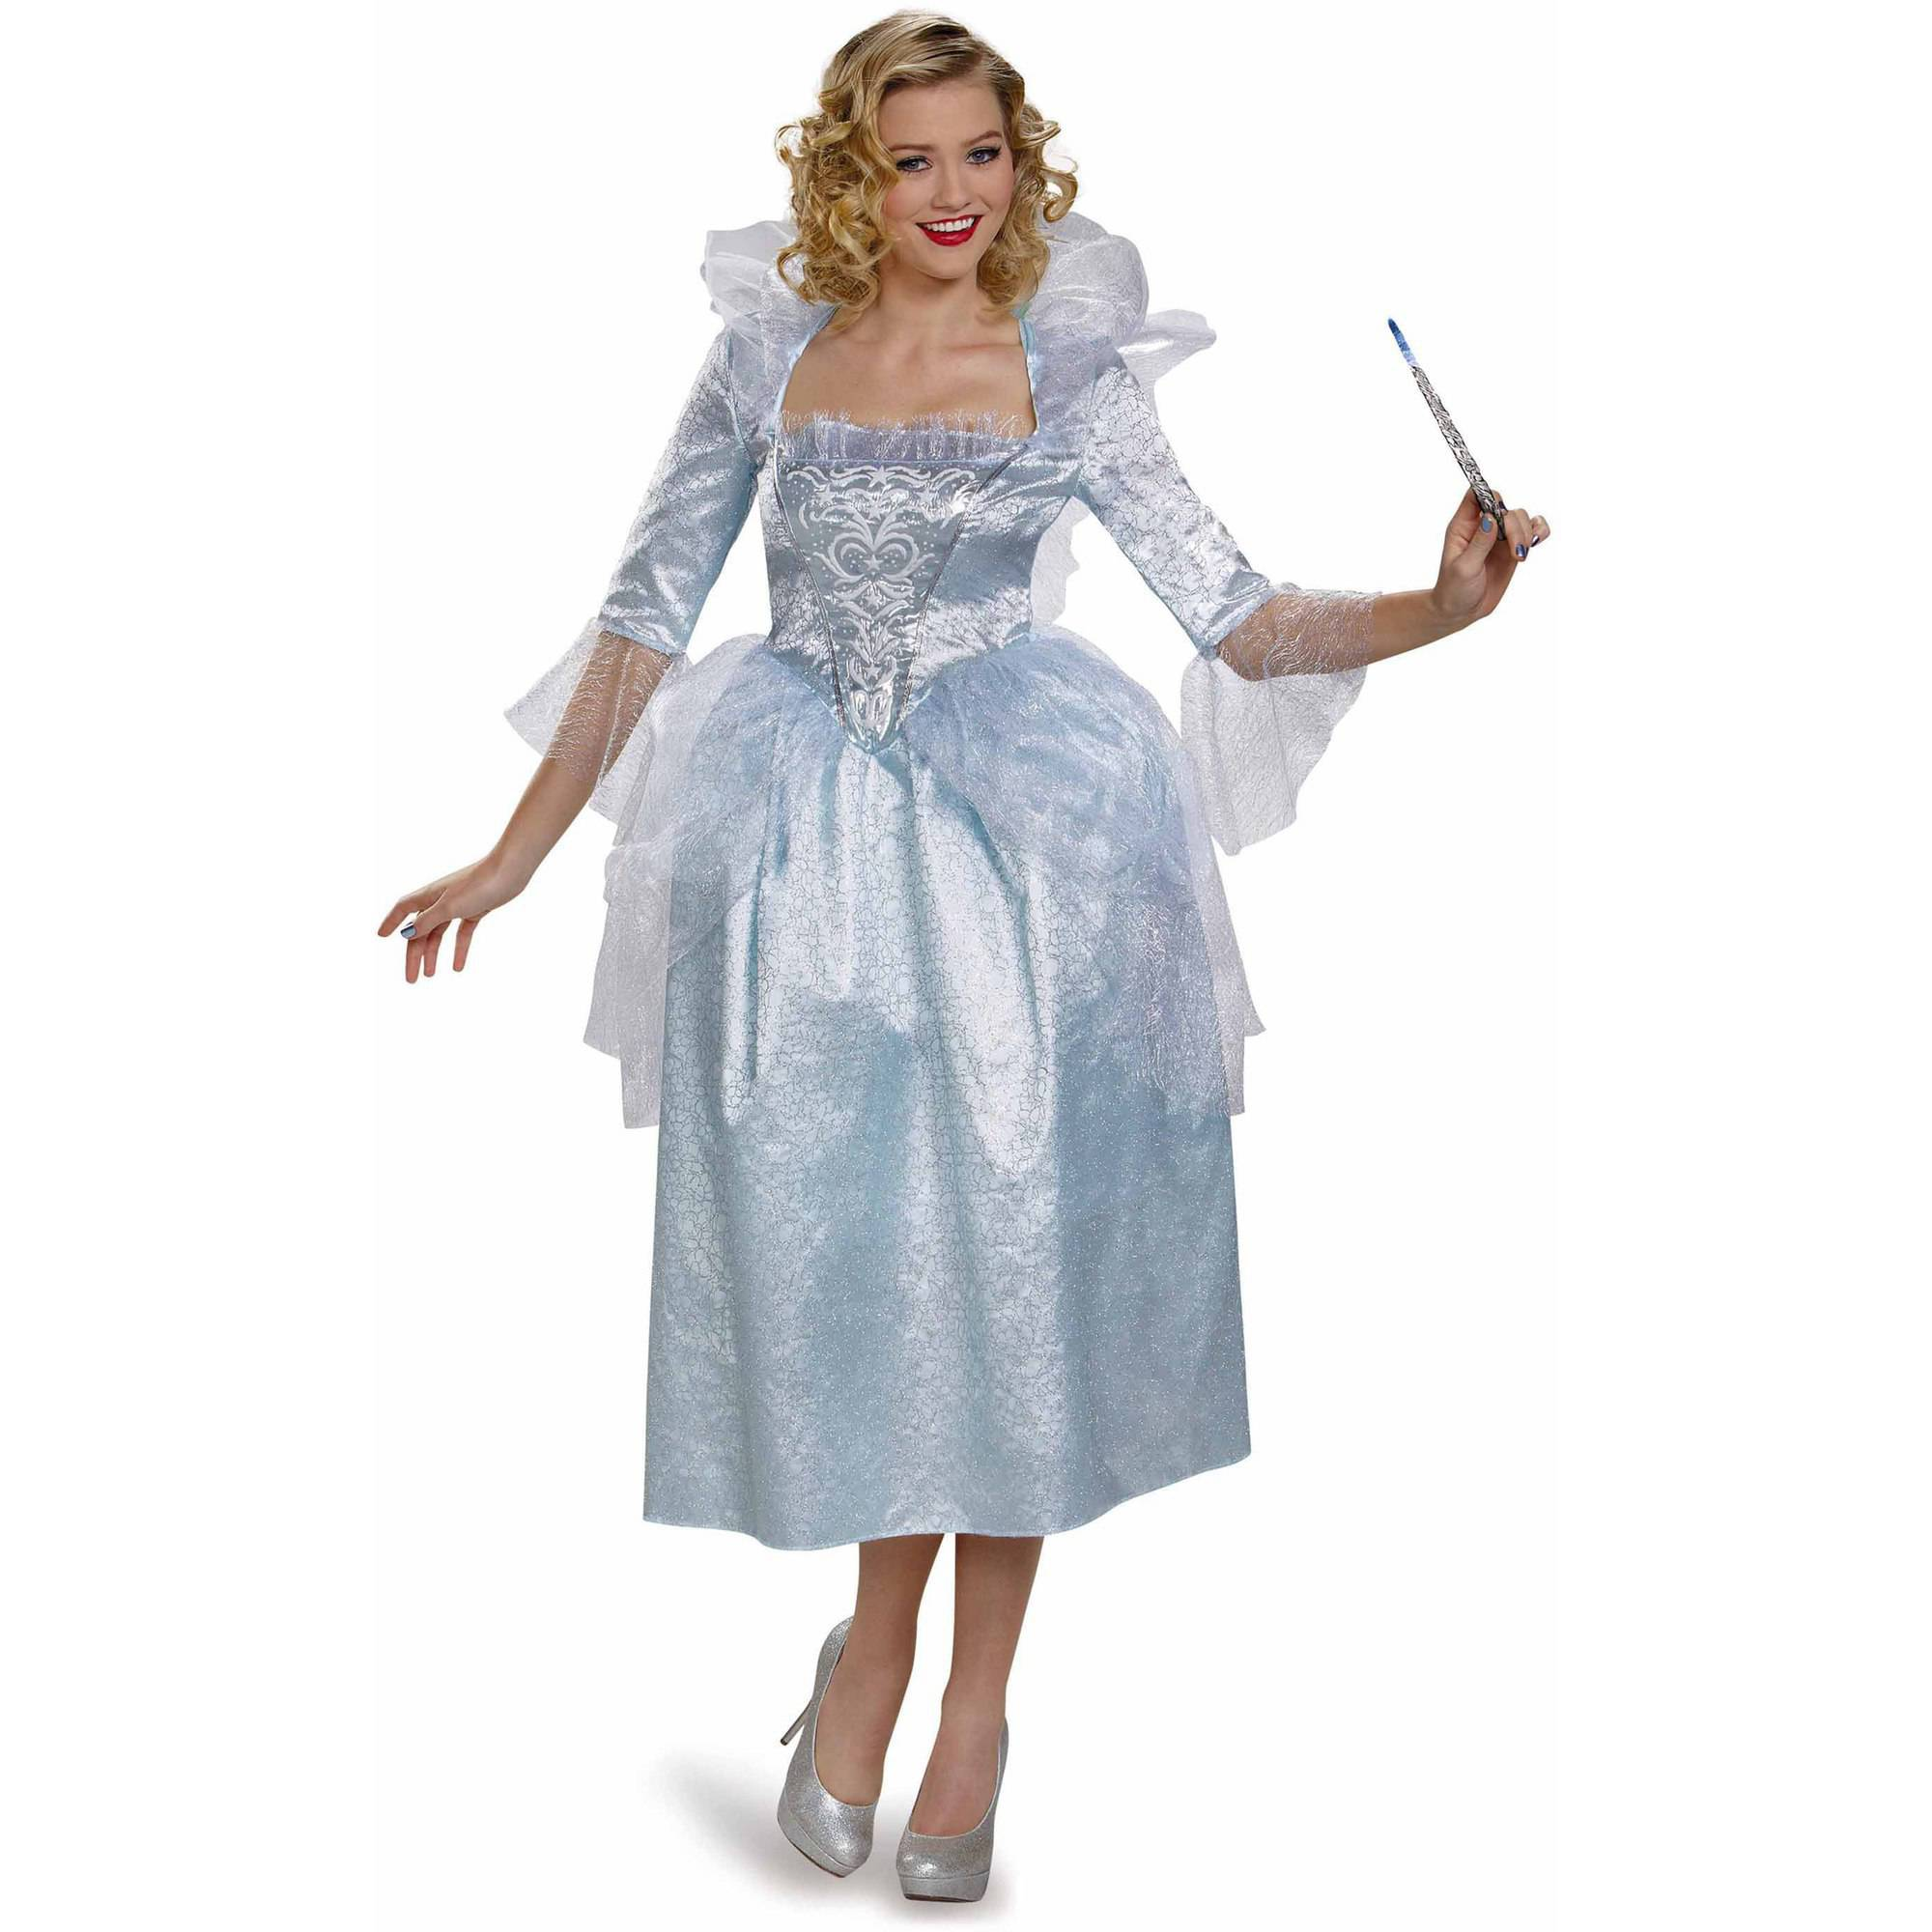 cinderella movie fairy godmother deluxe adult dress up role play costume walmartcom